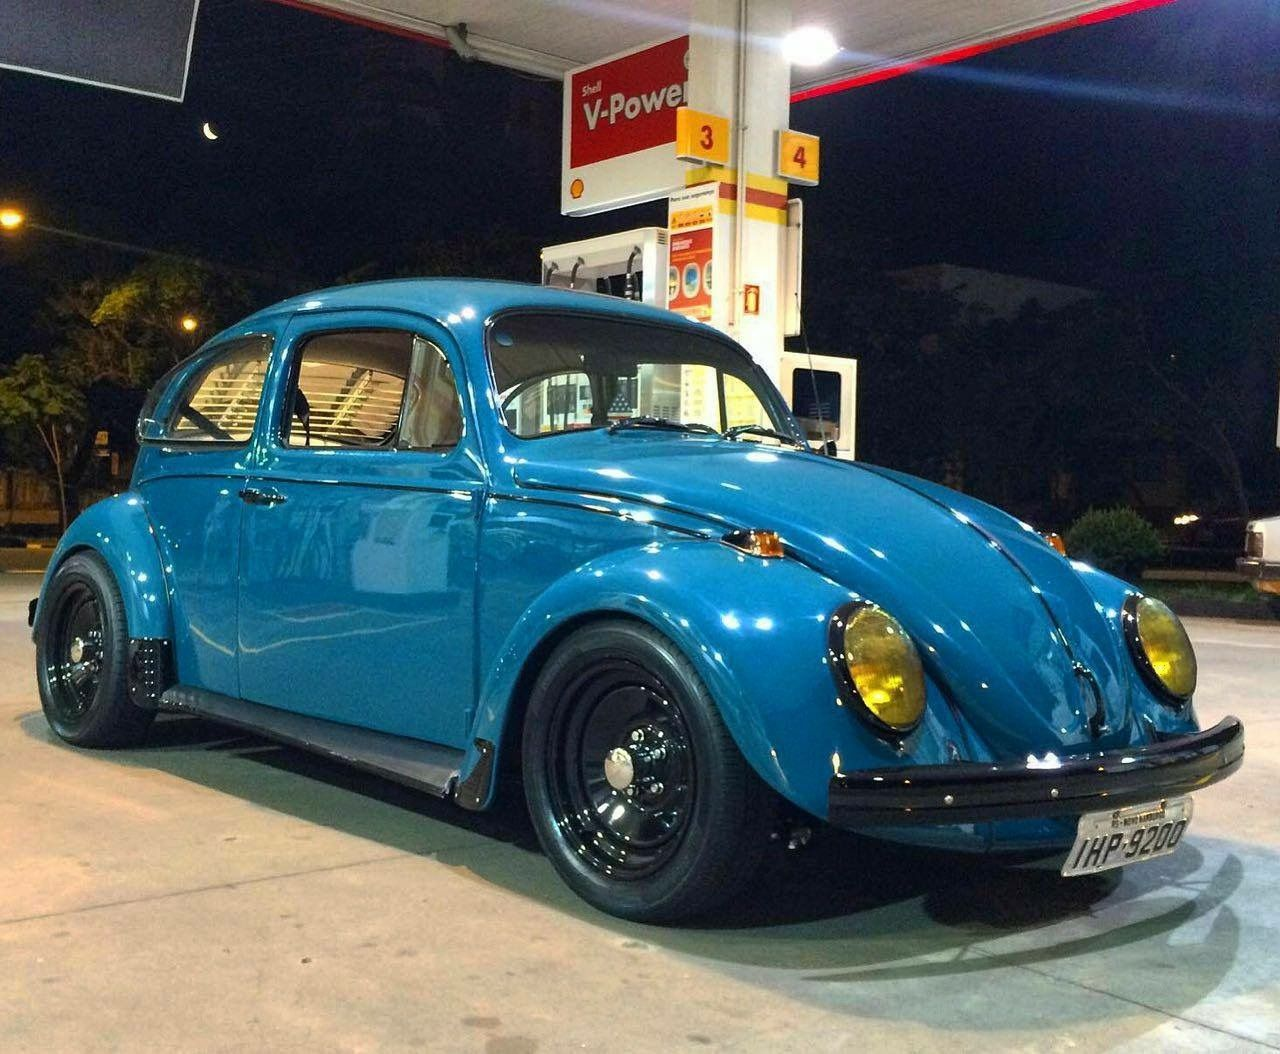 beetle sedan clubs coup image entitled and d bug containing fond hd photo cran a images title volkswagen